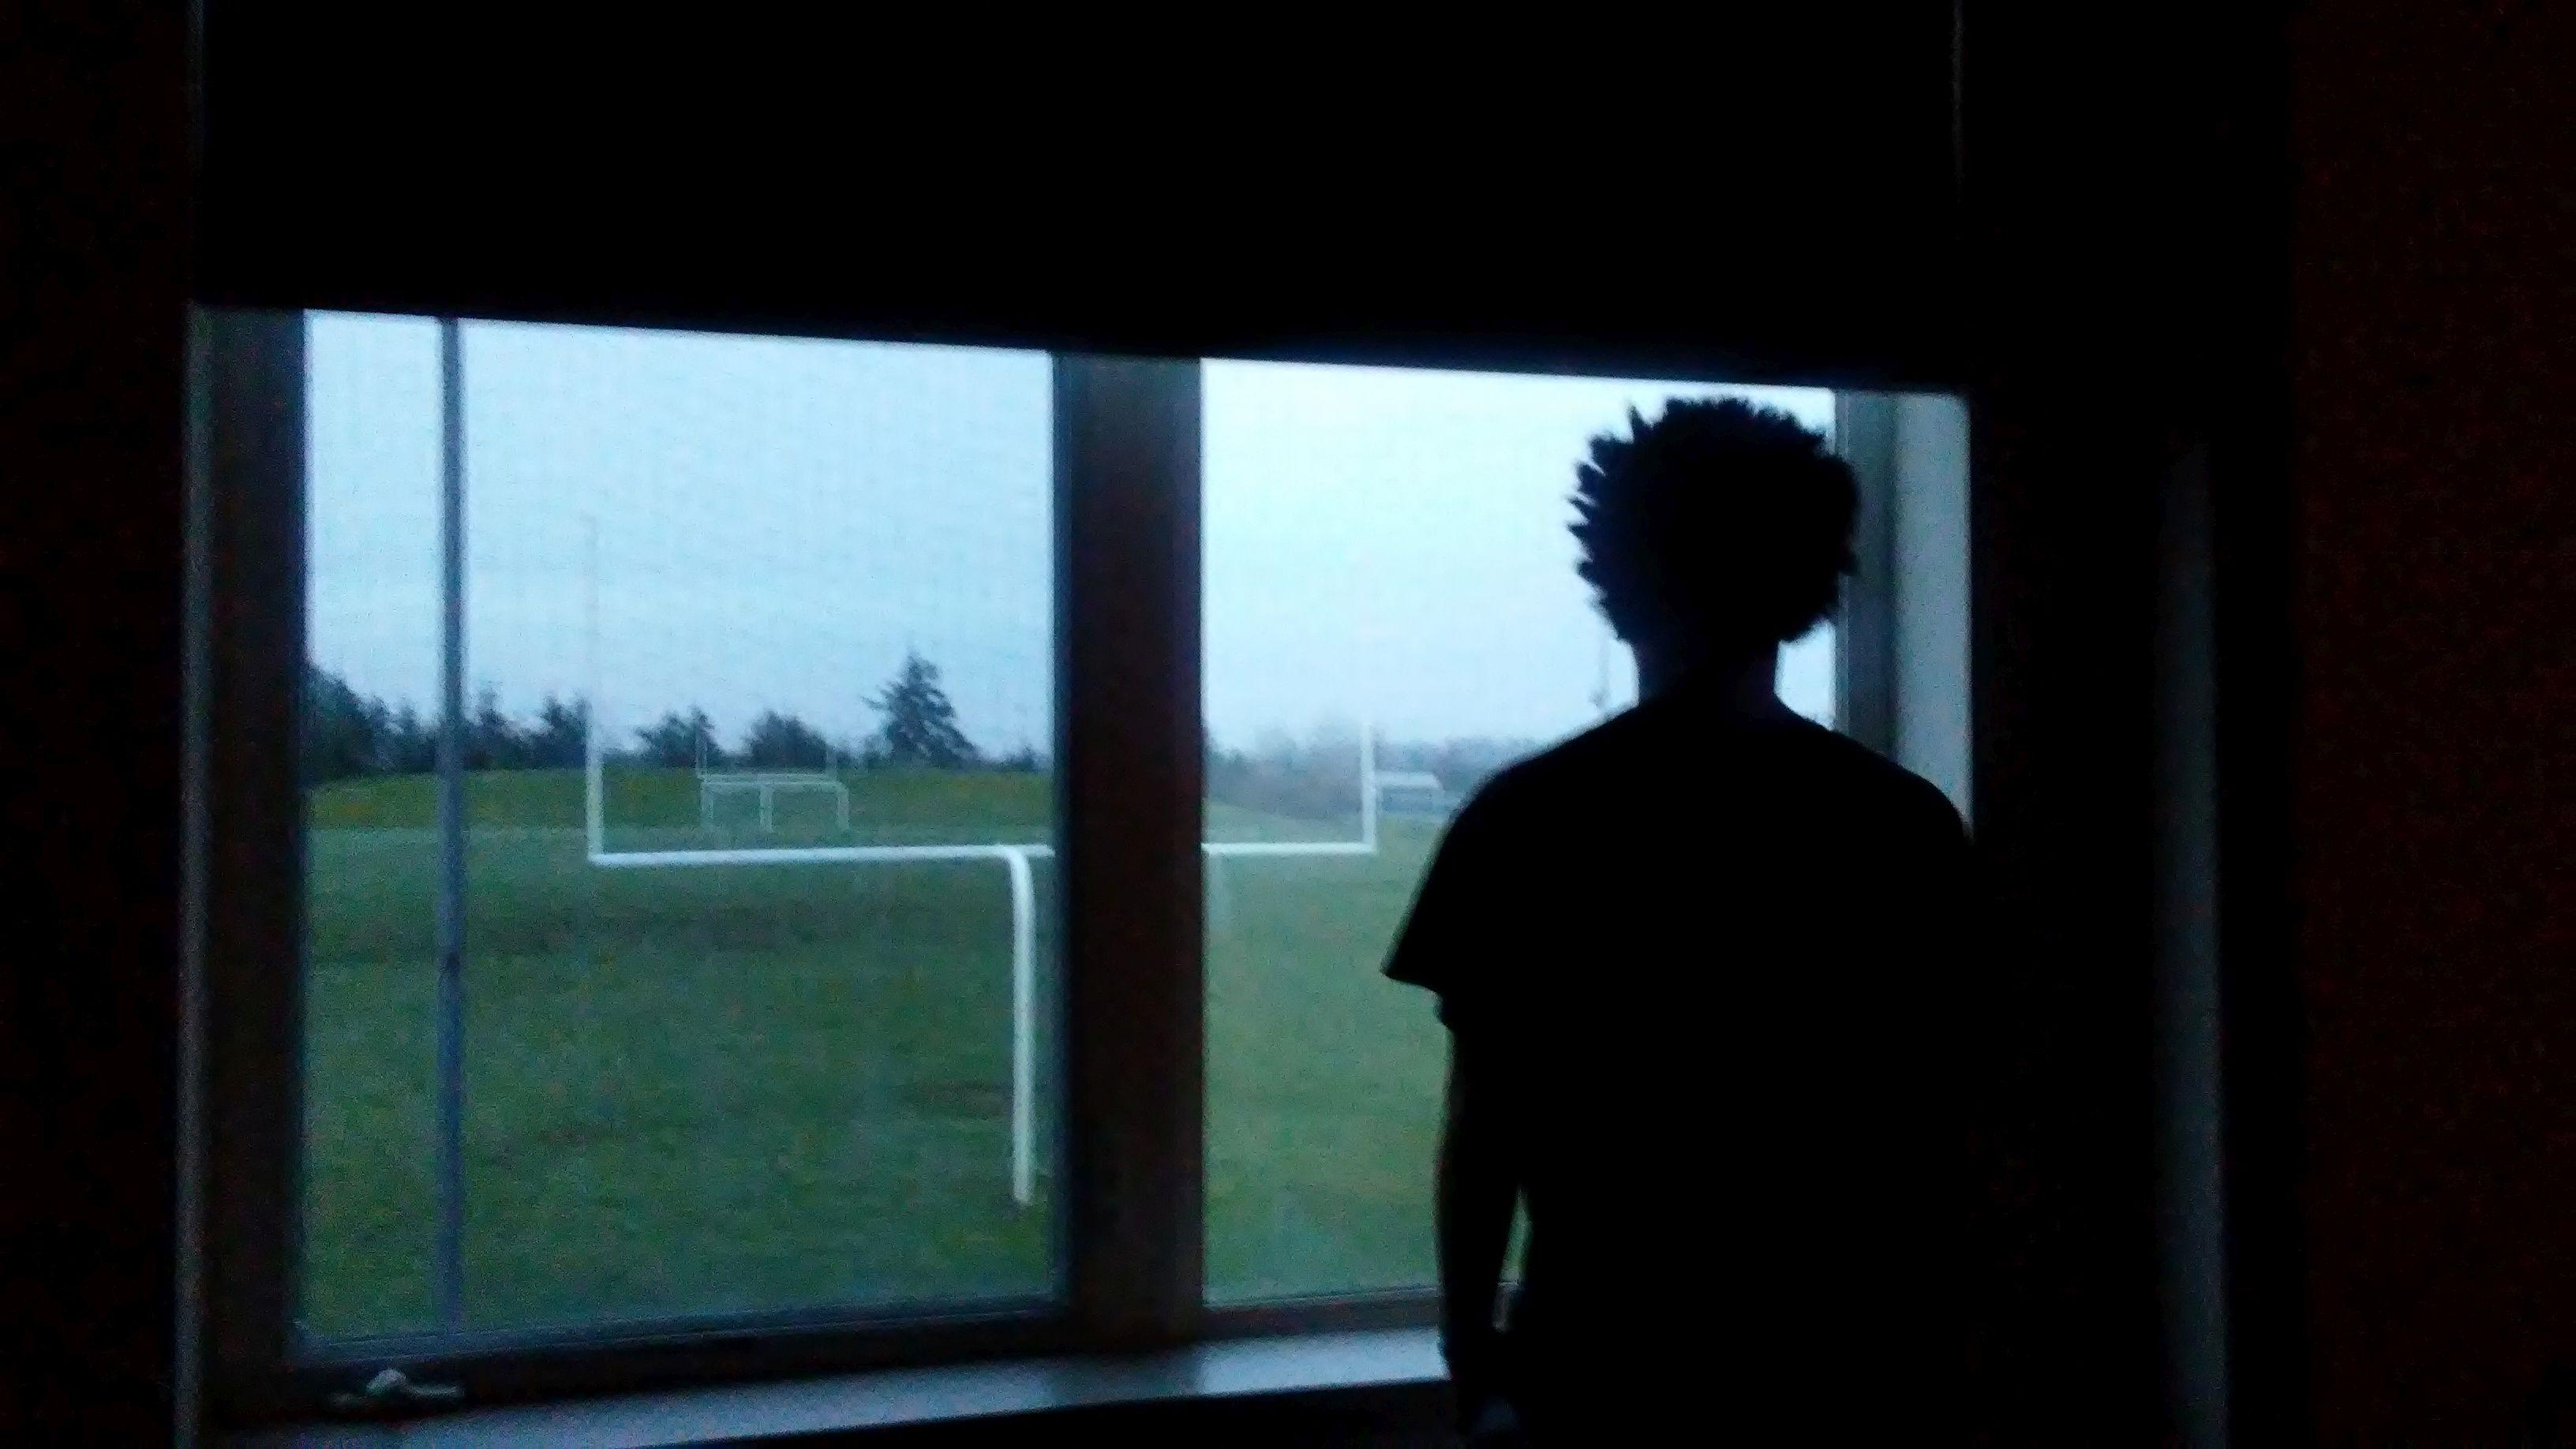 Nate Thomas looks out the window overlooking Memorial Field. Photo courtesy of Annette Thomas